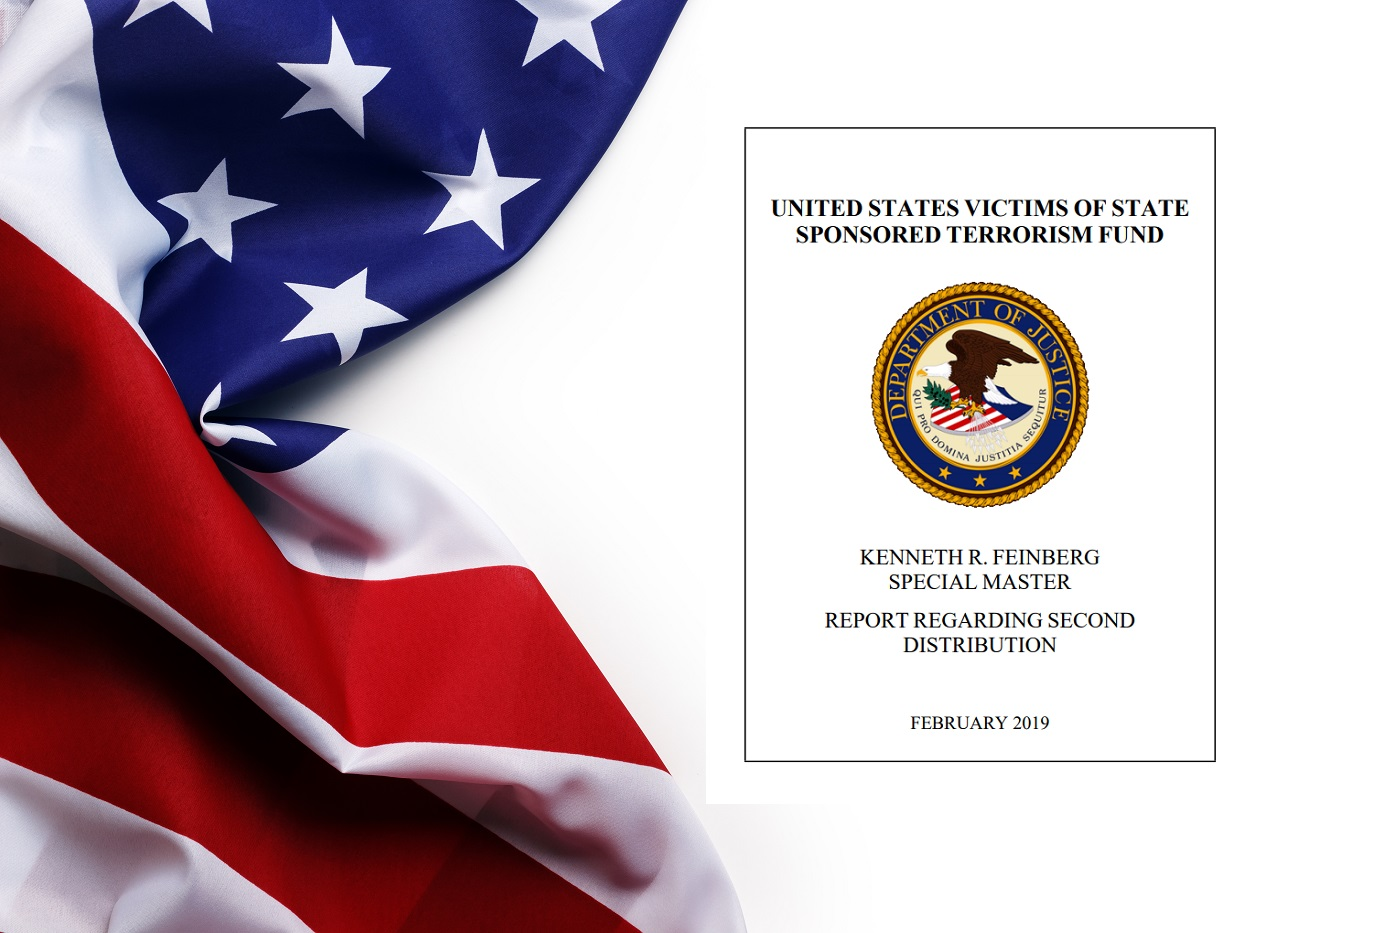 """American Flag and the front page of the """"Report Regarding Second Distribution""""  of the USVSST Fund by Special Master Kenneth R. Feinberg"""